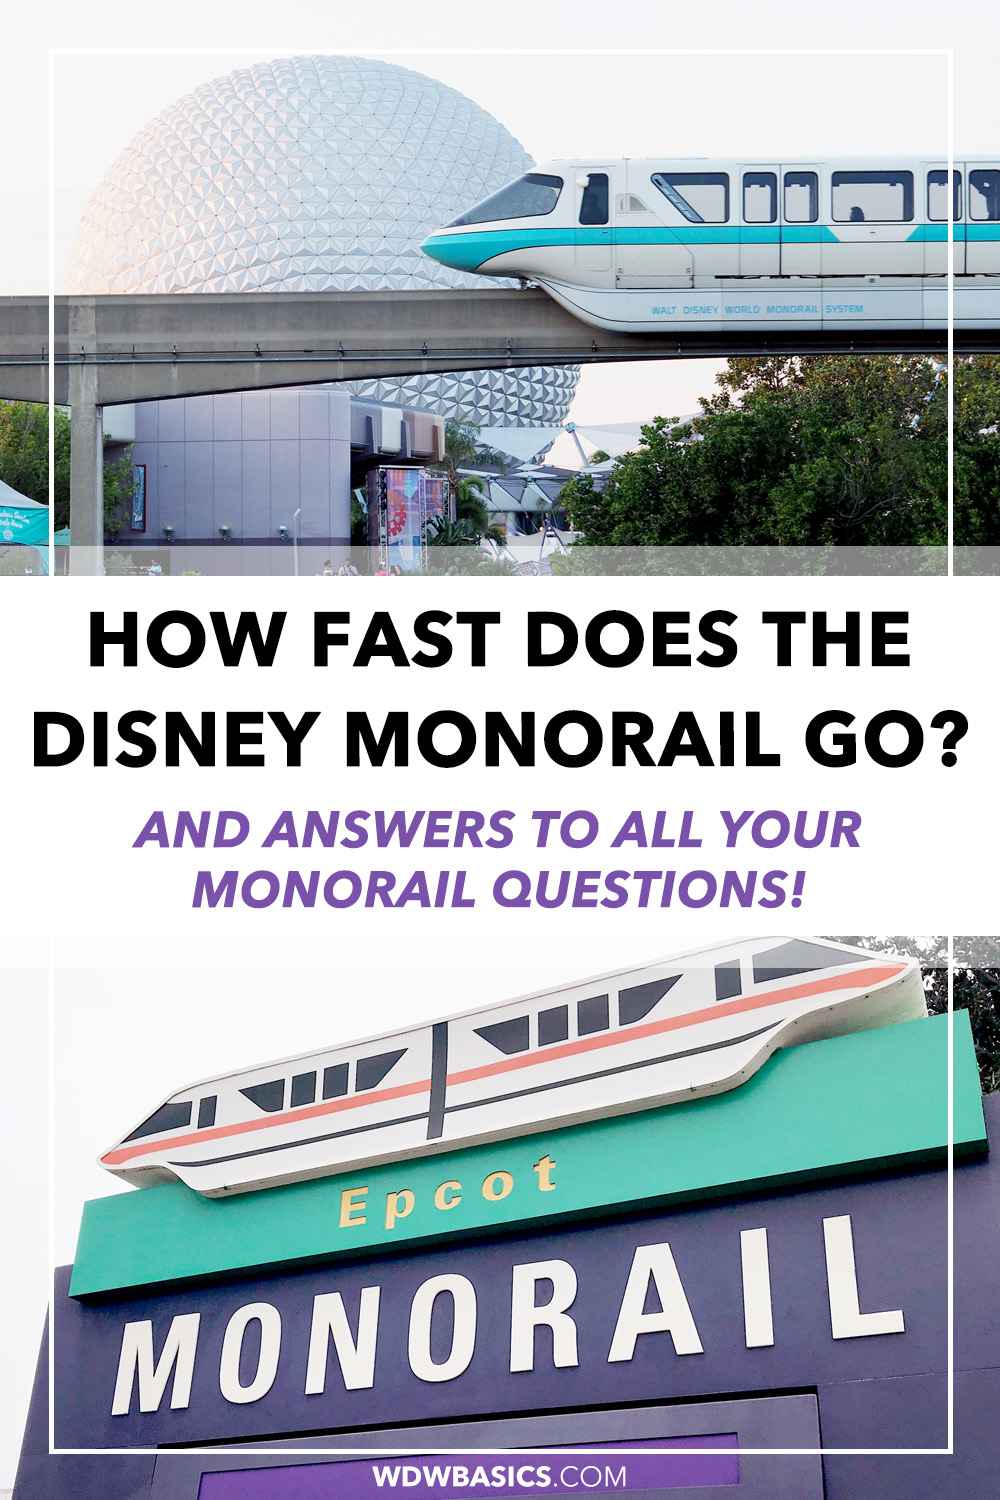 How fast does the Disney World monorail go?